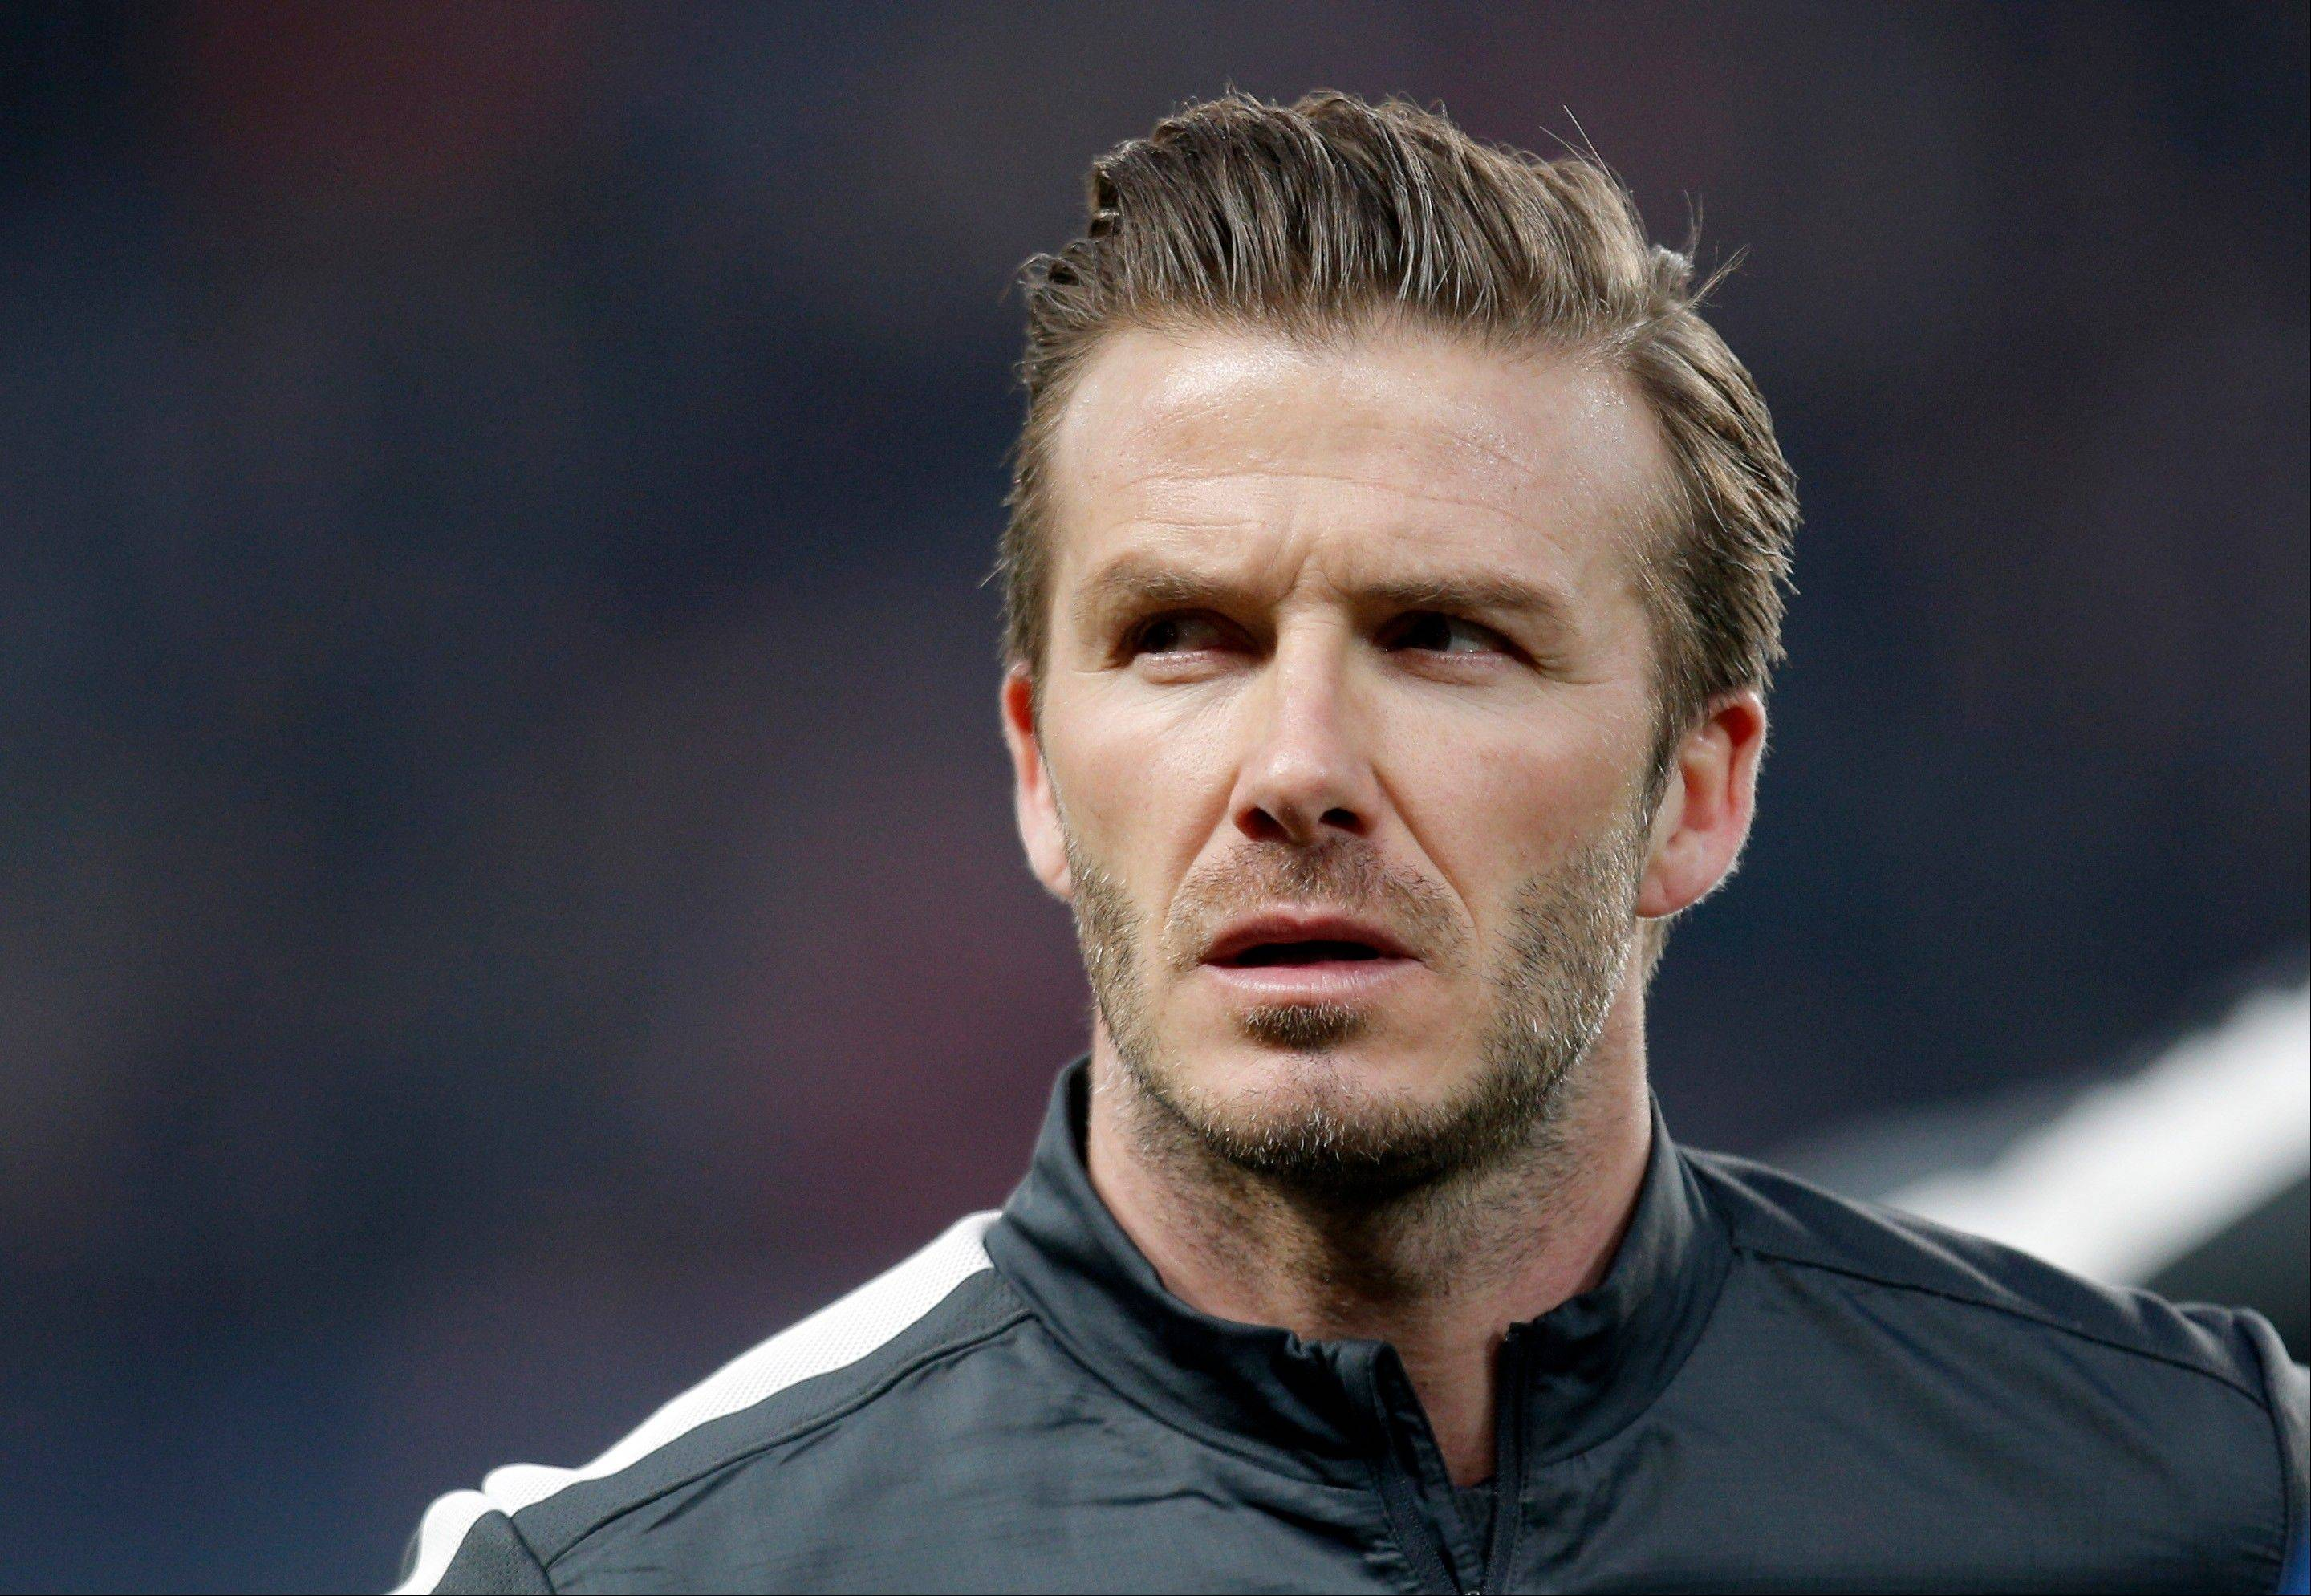 David Beckham scouted some locations last week and is looking for investors for an MLS expansion team in Miami.